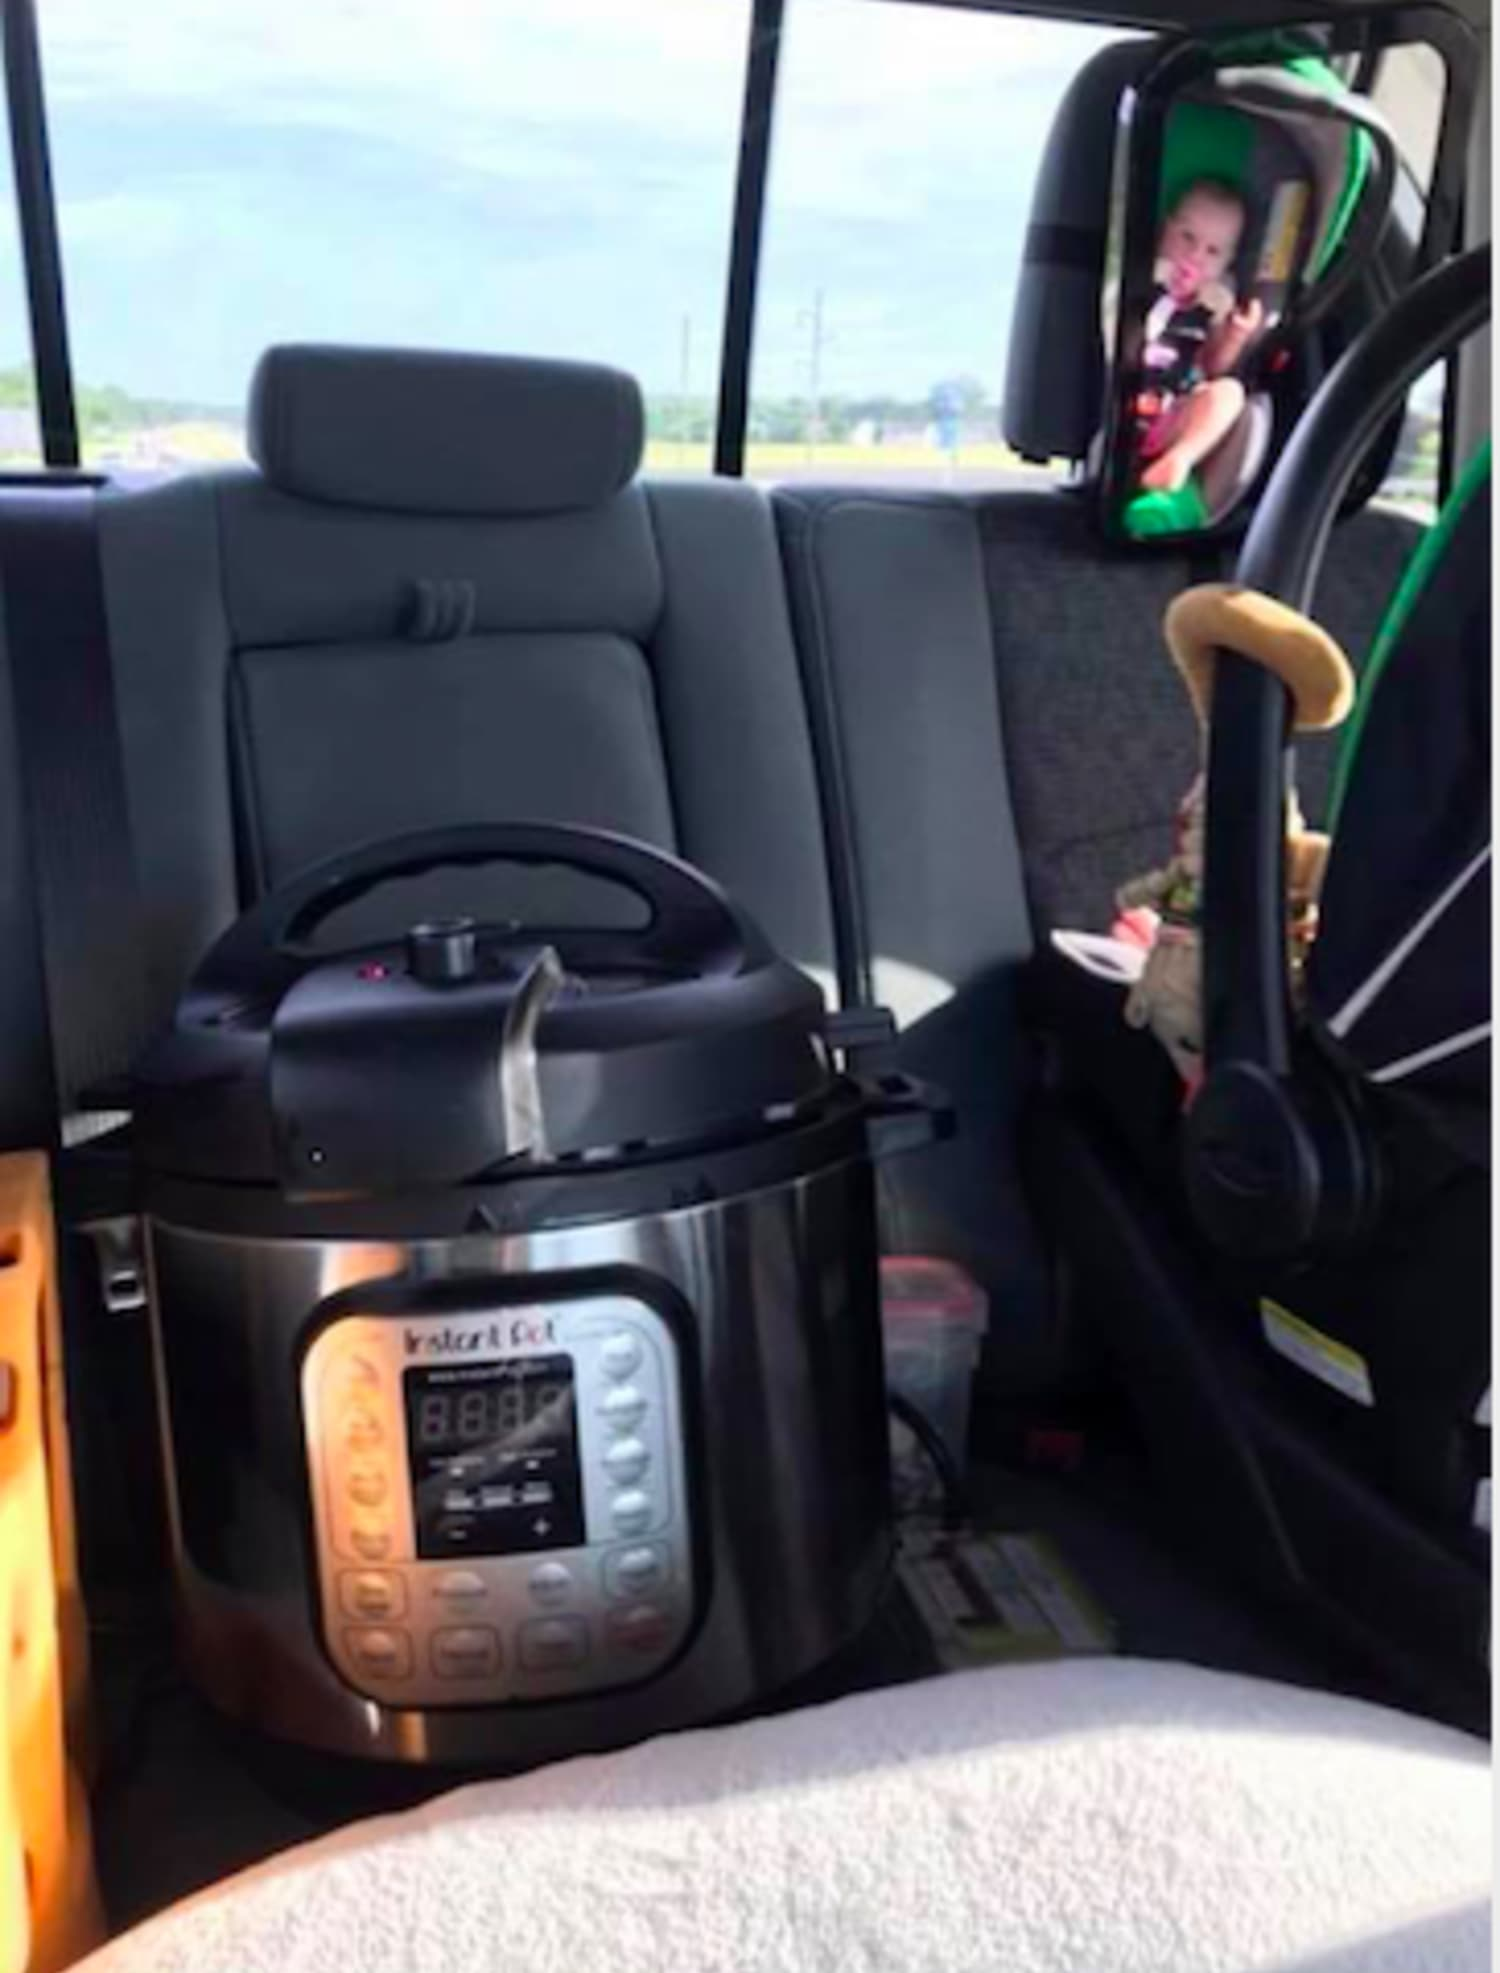 It's Not Just You - Other People Bring Their Instant Pots on Vacation Too